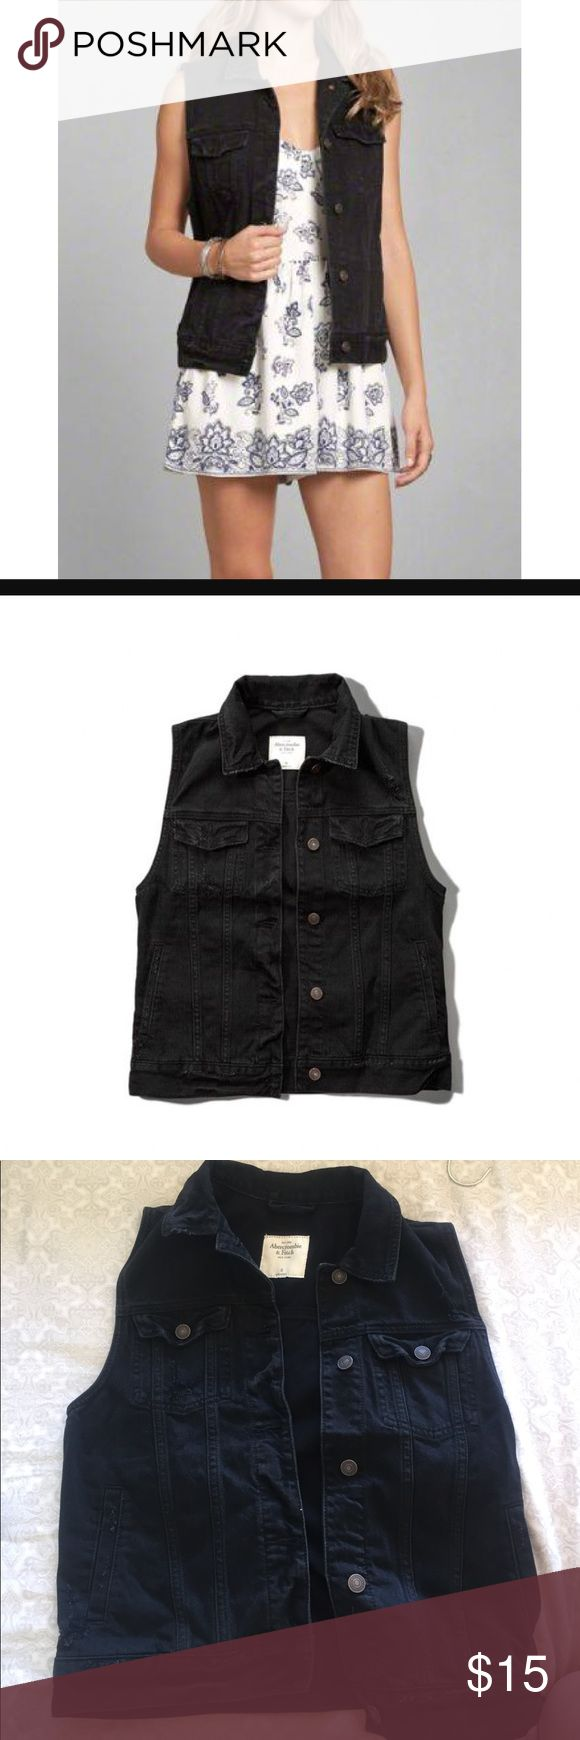 Abercrombie and Fitch Black Jean Vest Work once for a costume! Great/New Condition! Size S! Abercrombie & Fitch Jackets & Coats Jean Jackets